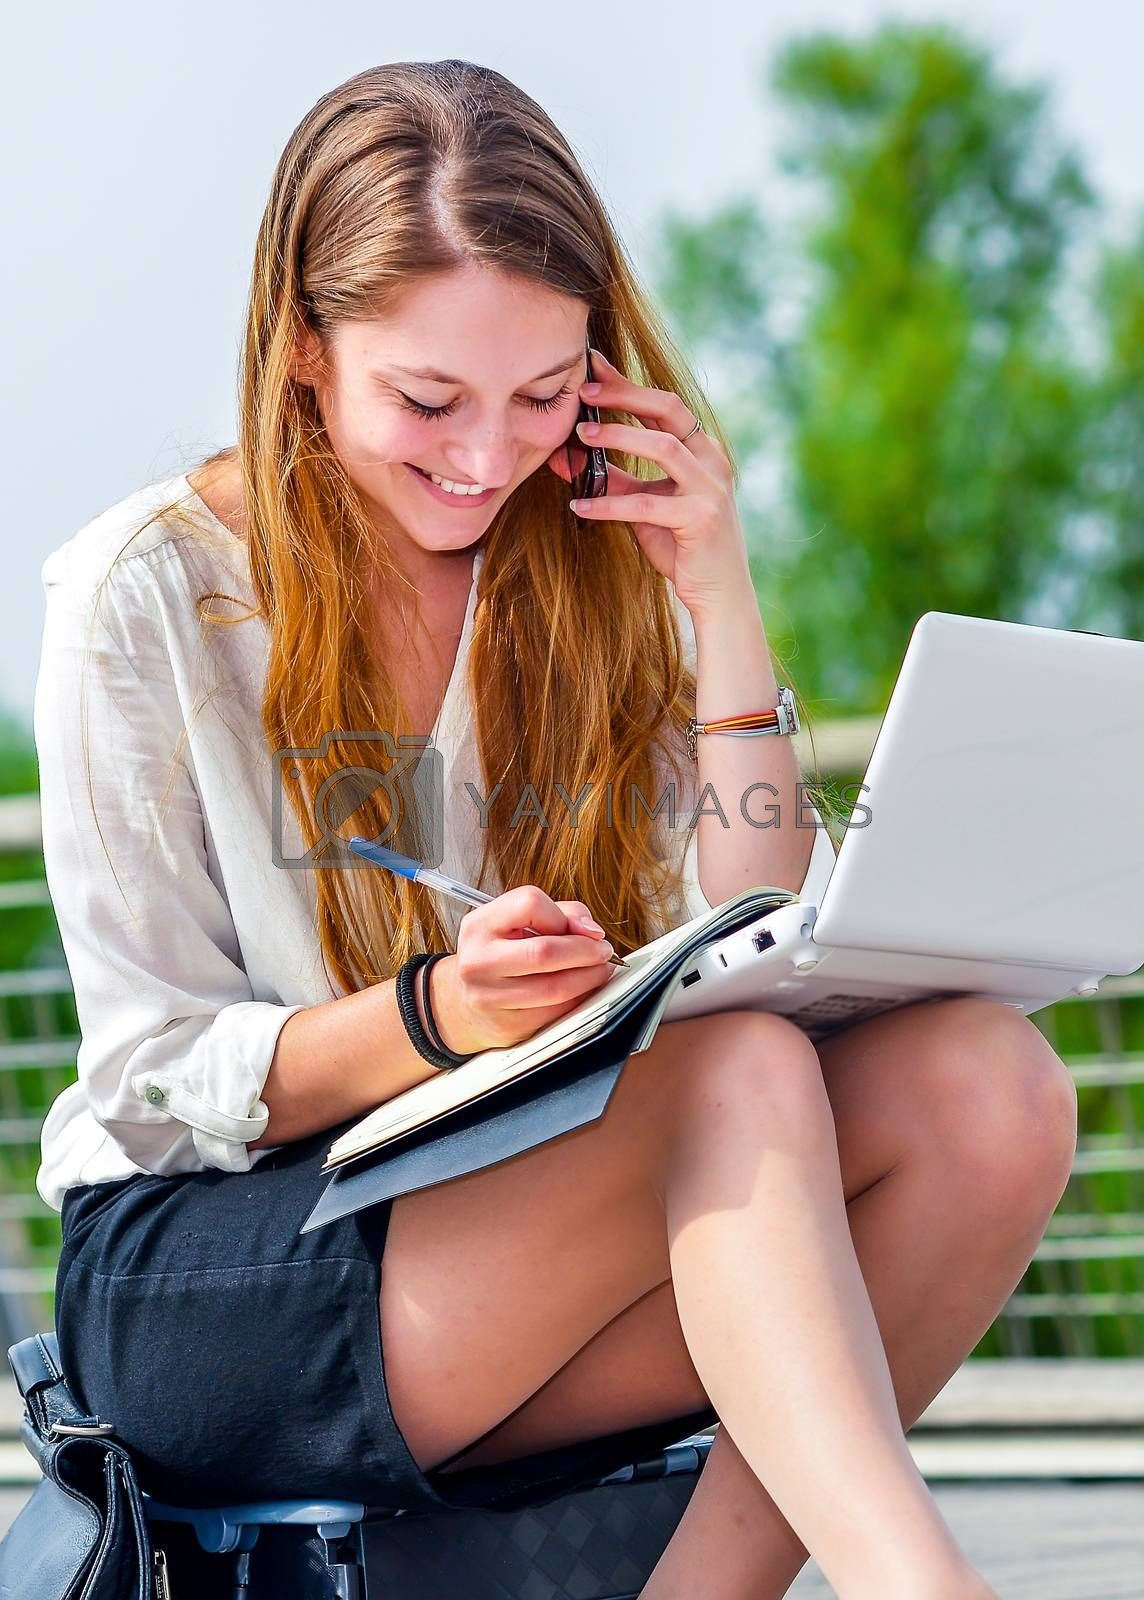 dynamic young executive girl on the phone taking notes on her agenda. Symbolizing a job search or a trade of outsourcing